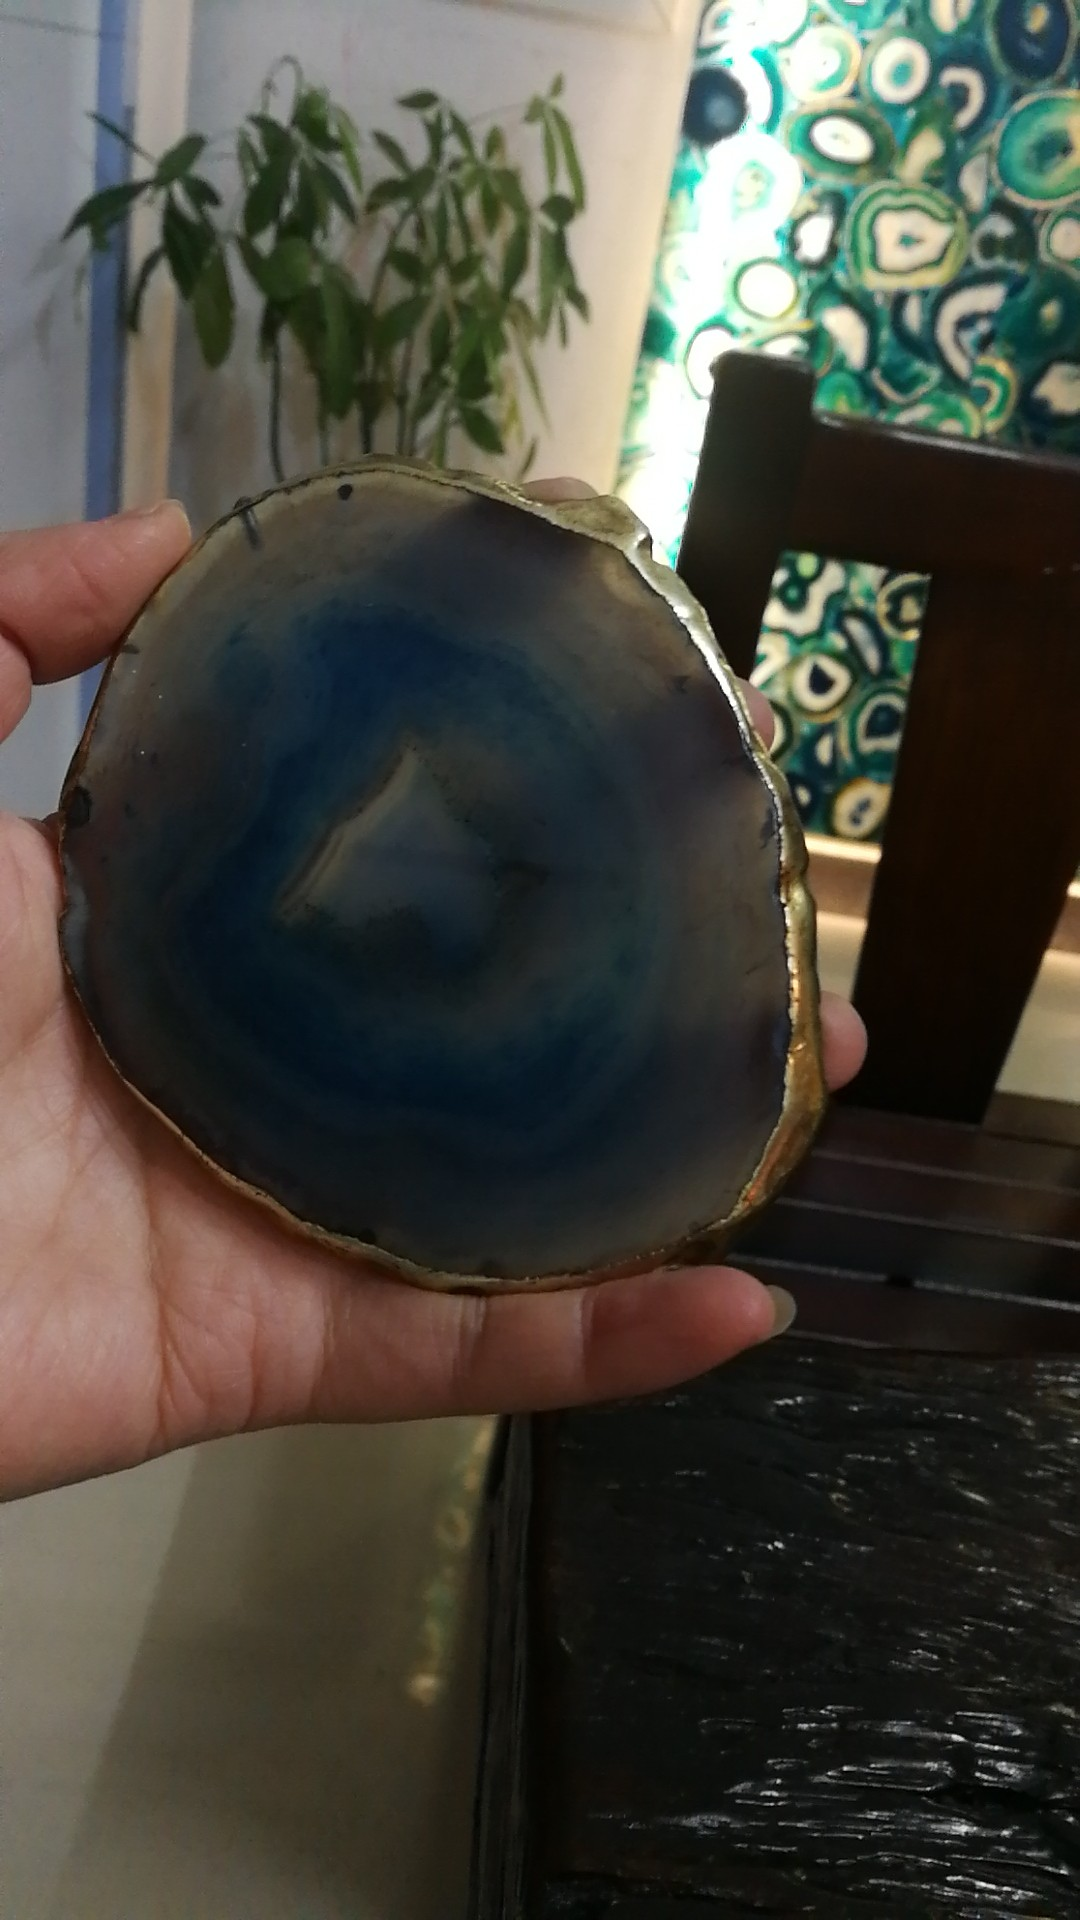 Agate candle holder,agate moon,red agate,agate countertop,agate sphere,brazilian agate slices,rough agate price,black agate,agate decoration,rough brazilian agate